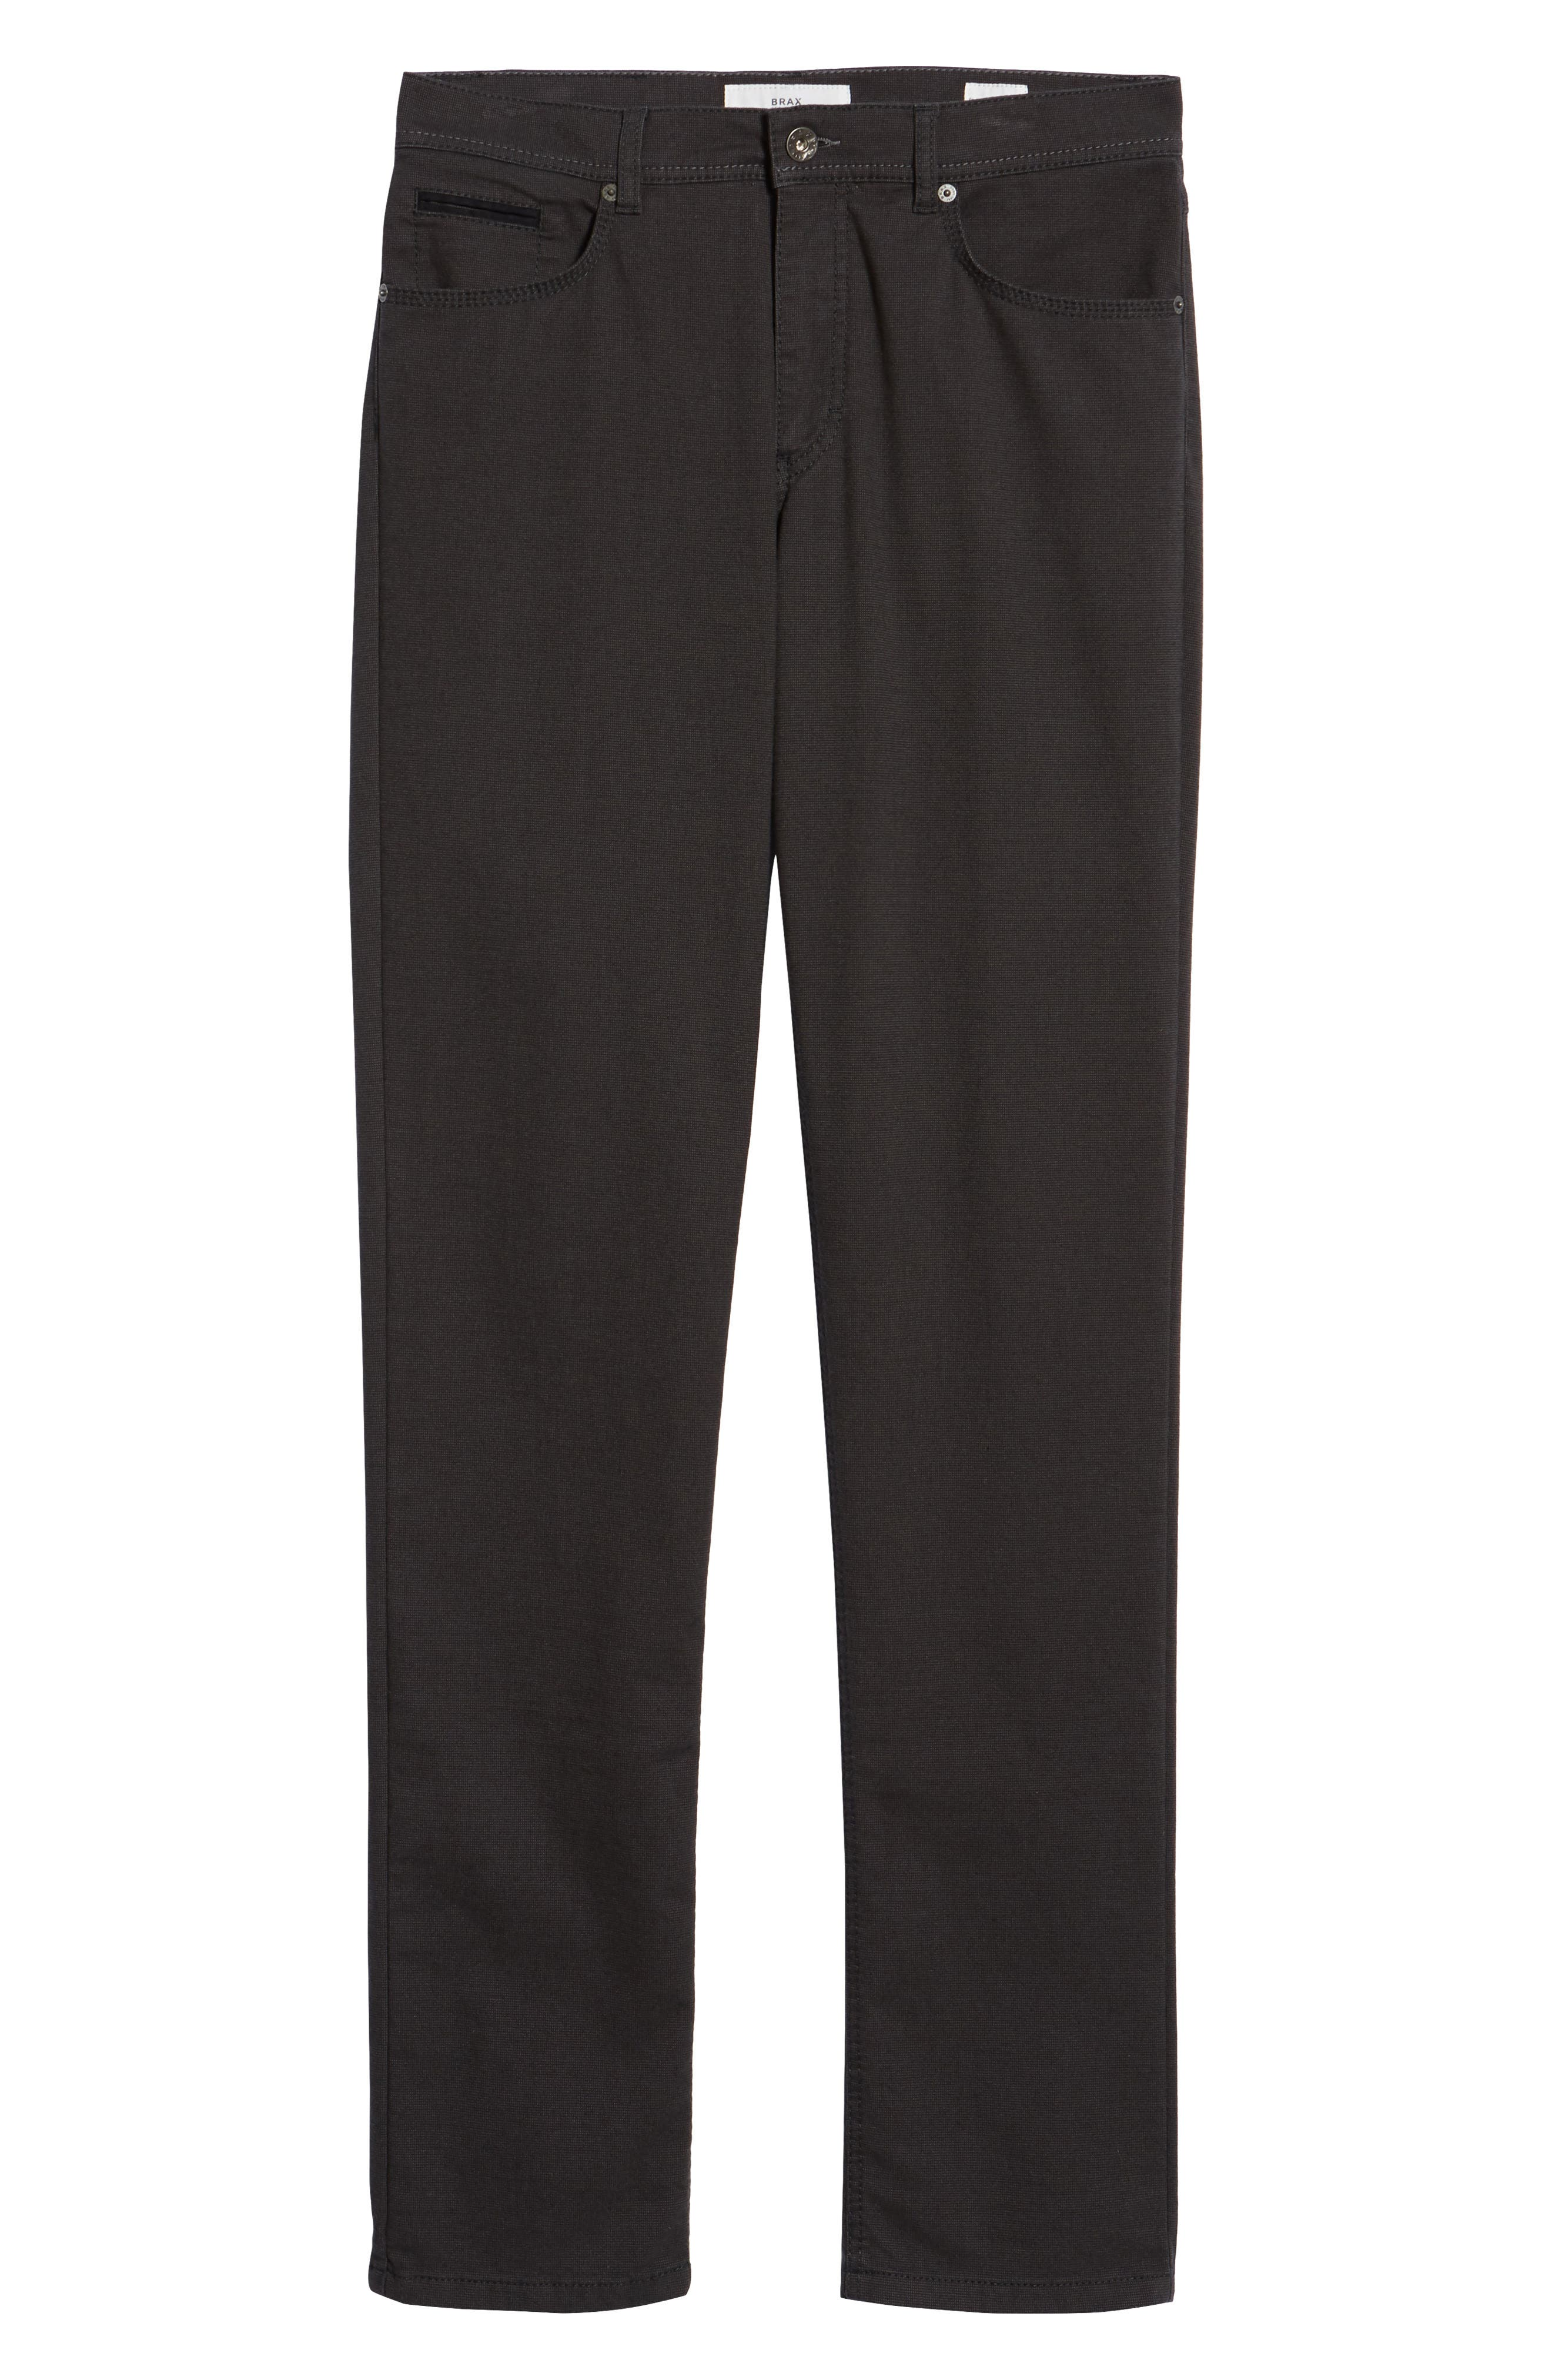 BRAX, Woolook Classic Fit Flat Front Pants, Alternate thumbnail 7, color, ANTHRA